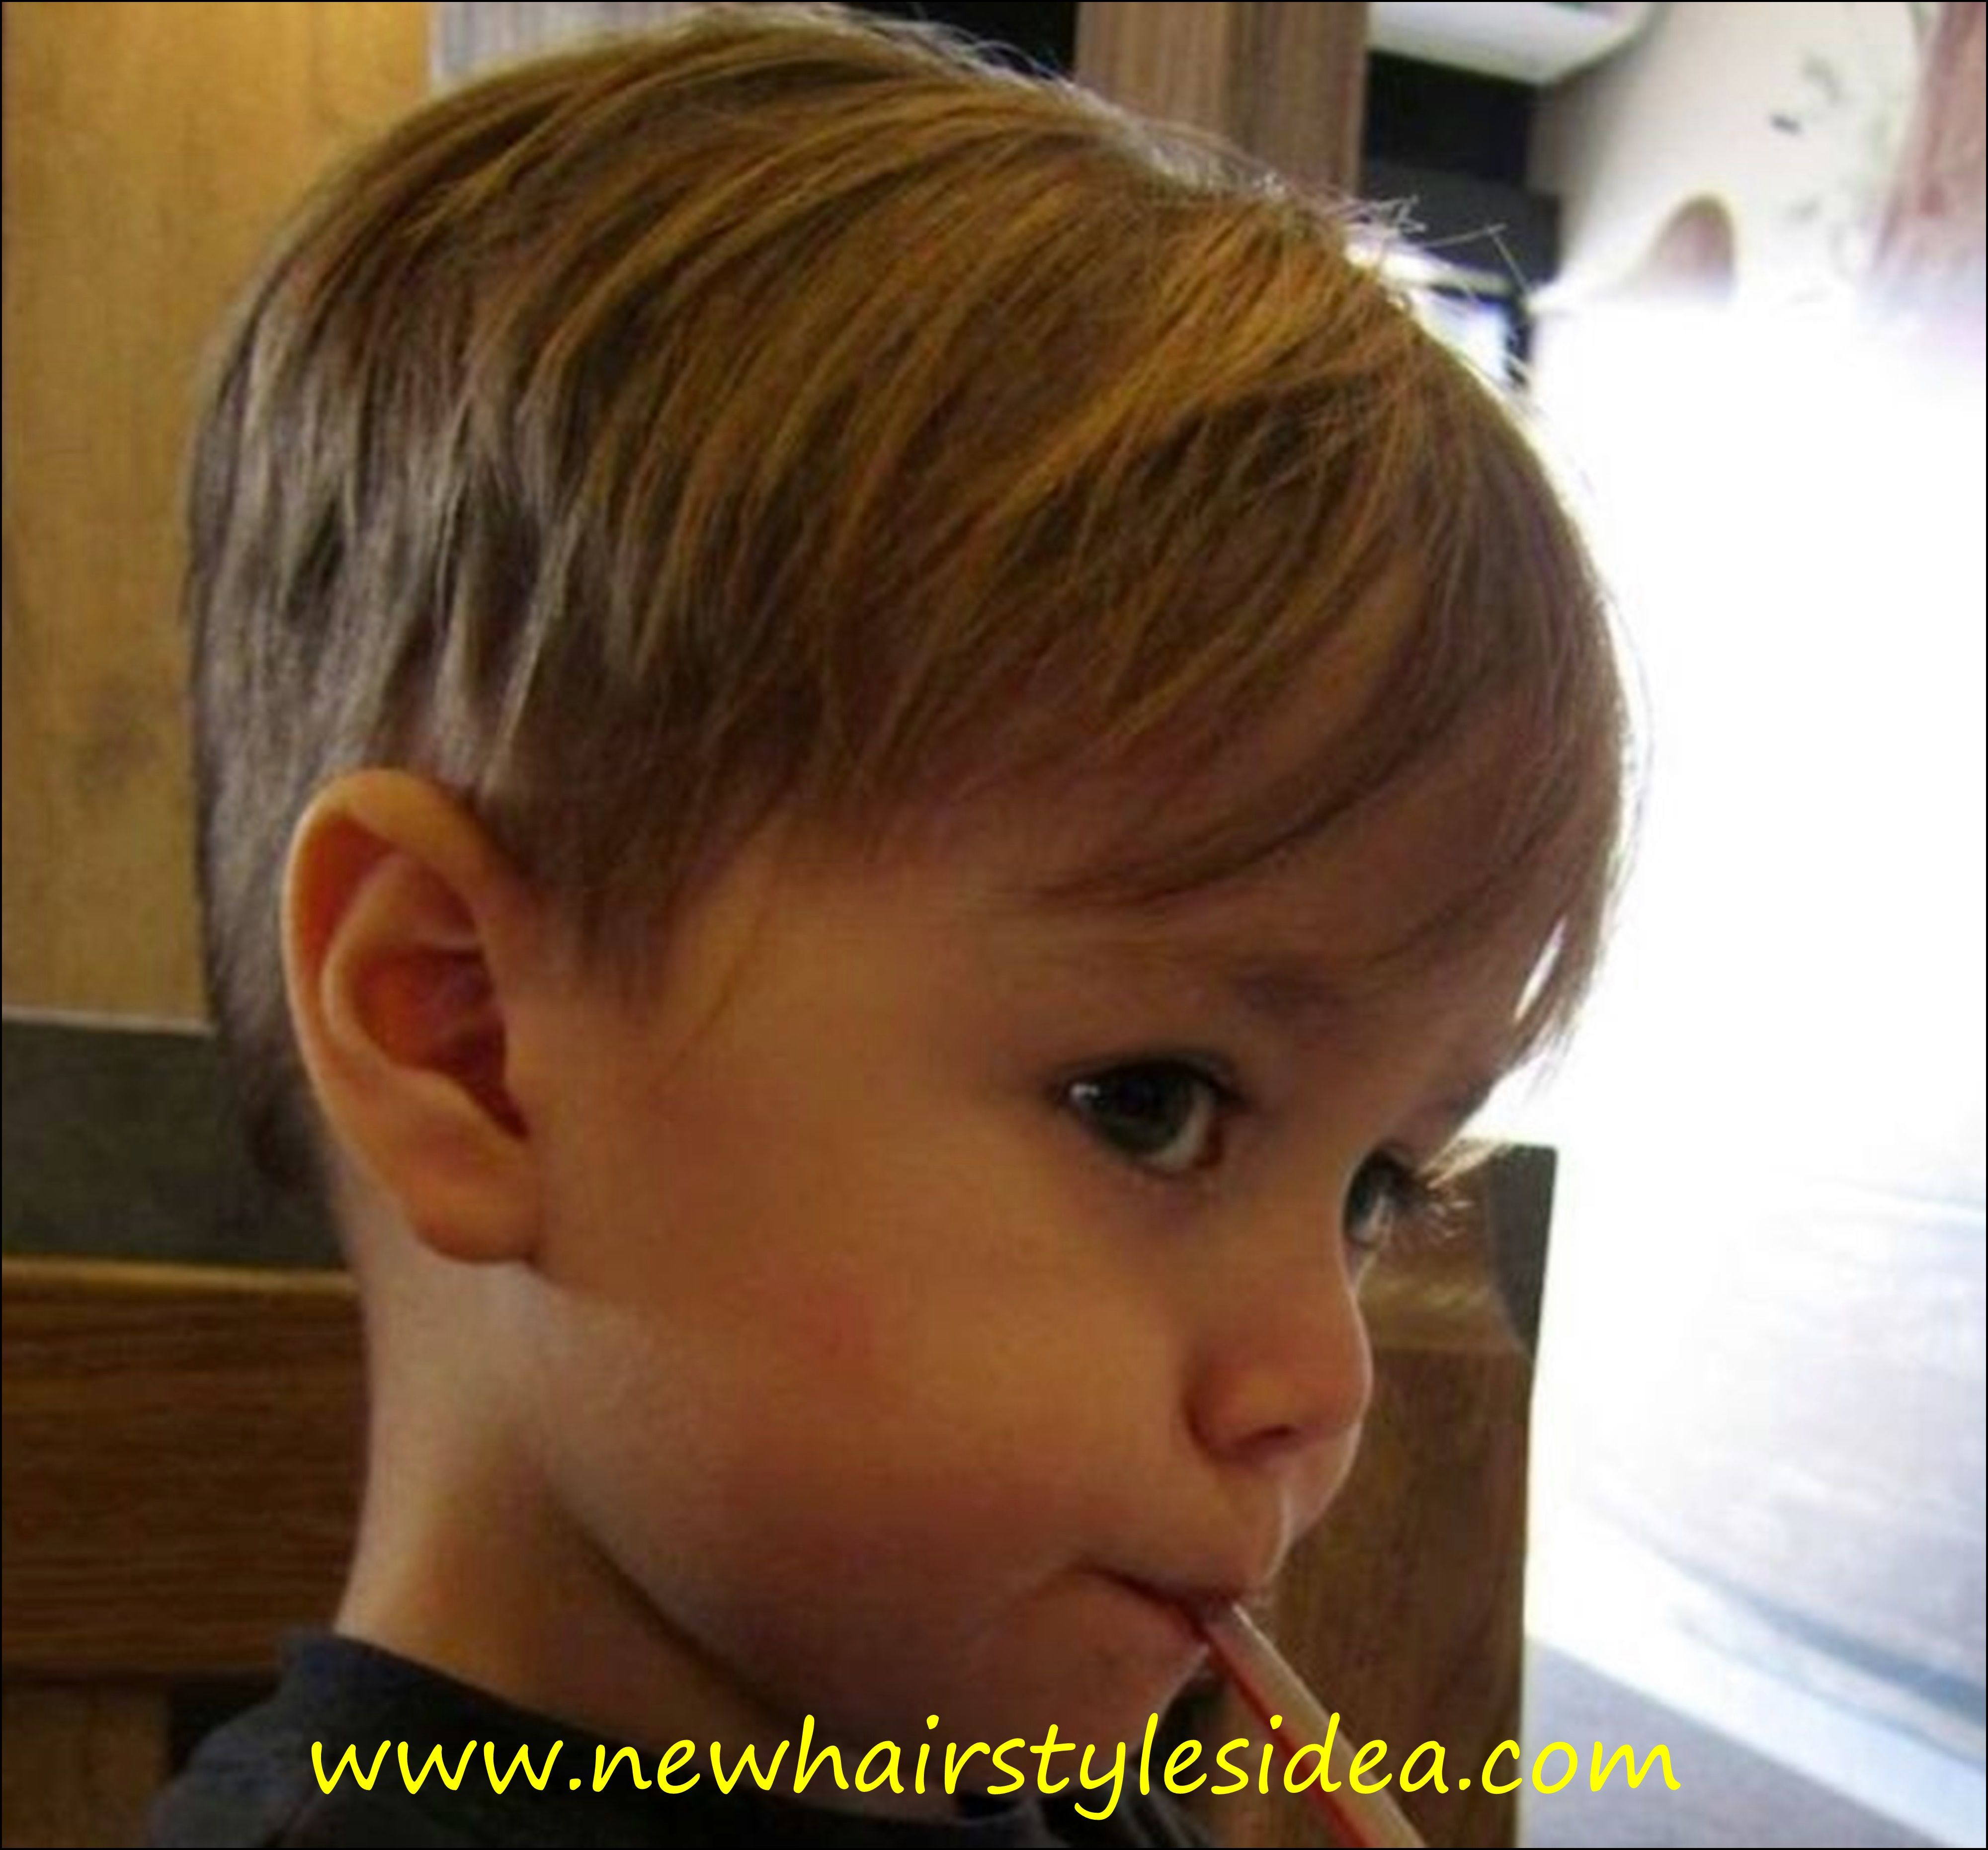 Incoming Search Terms:hairstyles New Boysnew Boy Hairstyle 2015